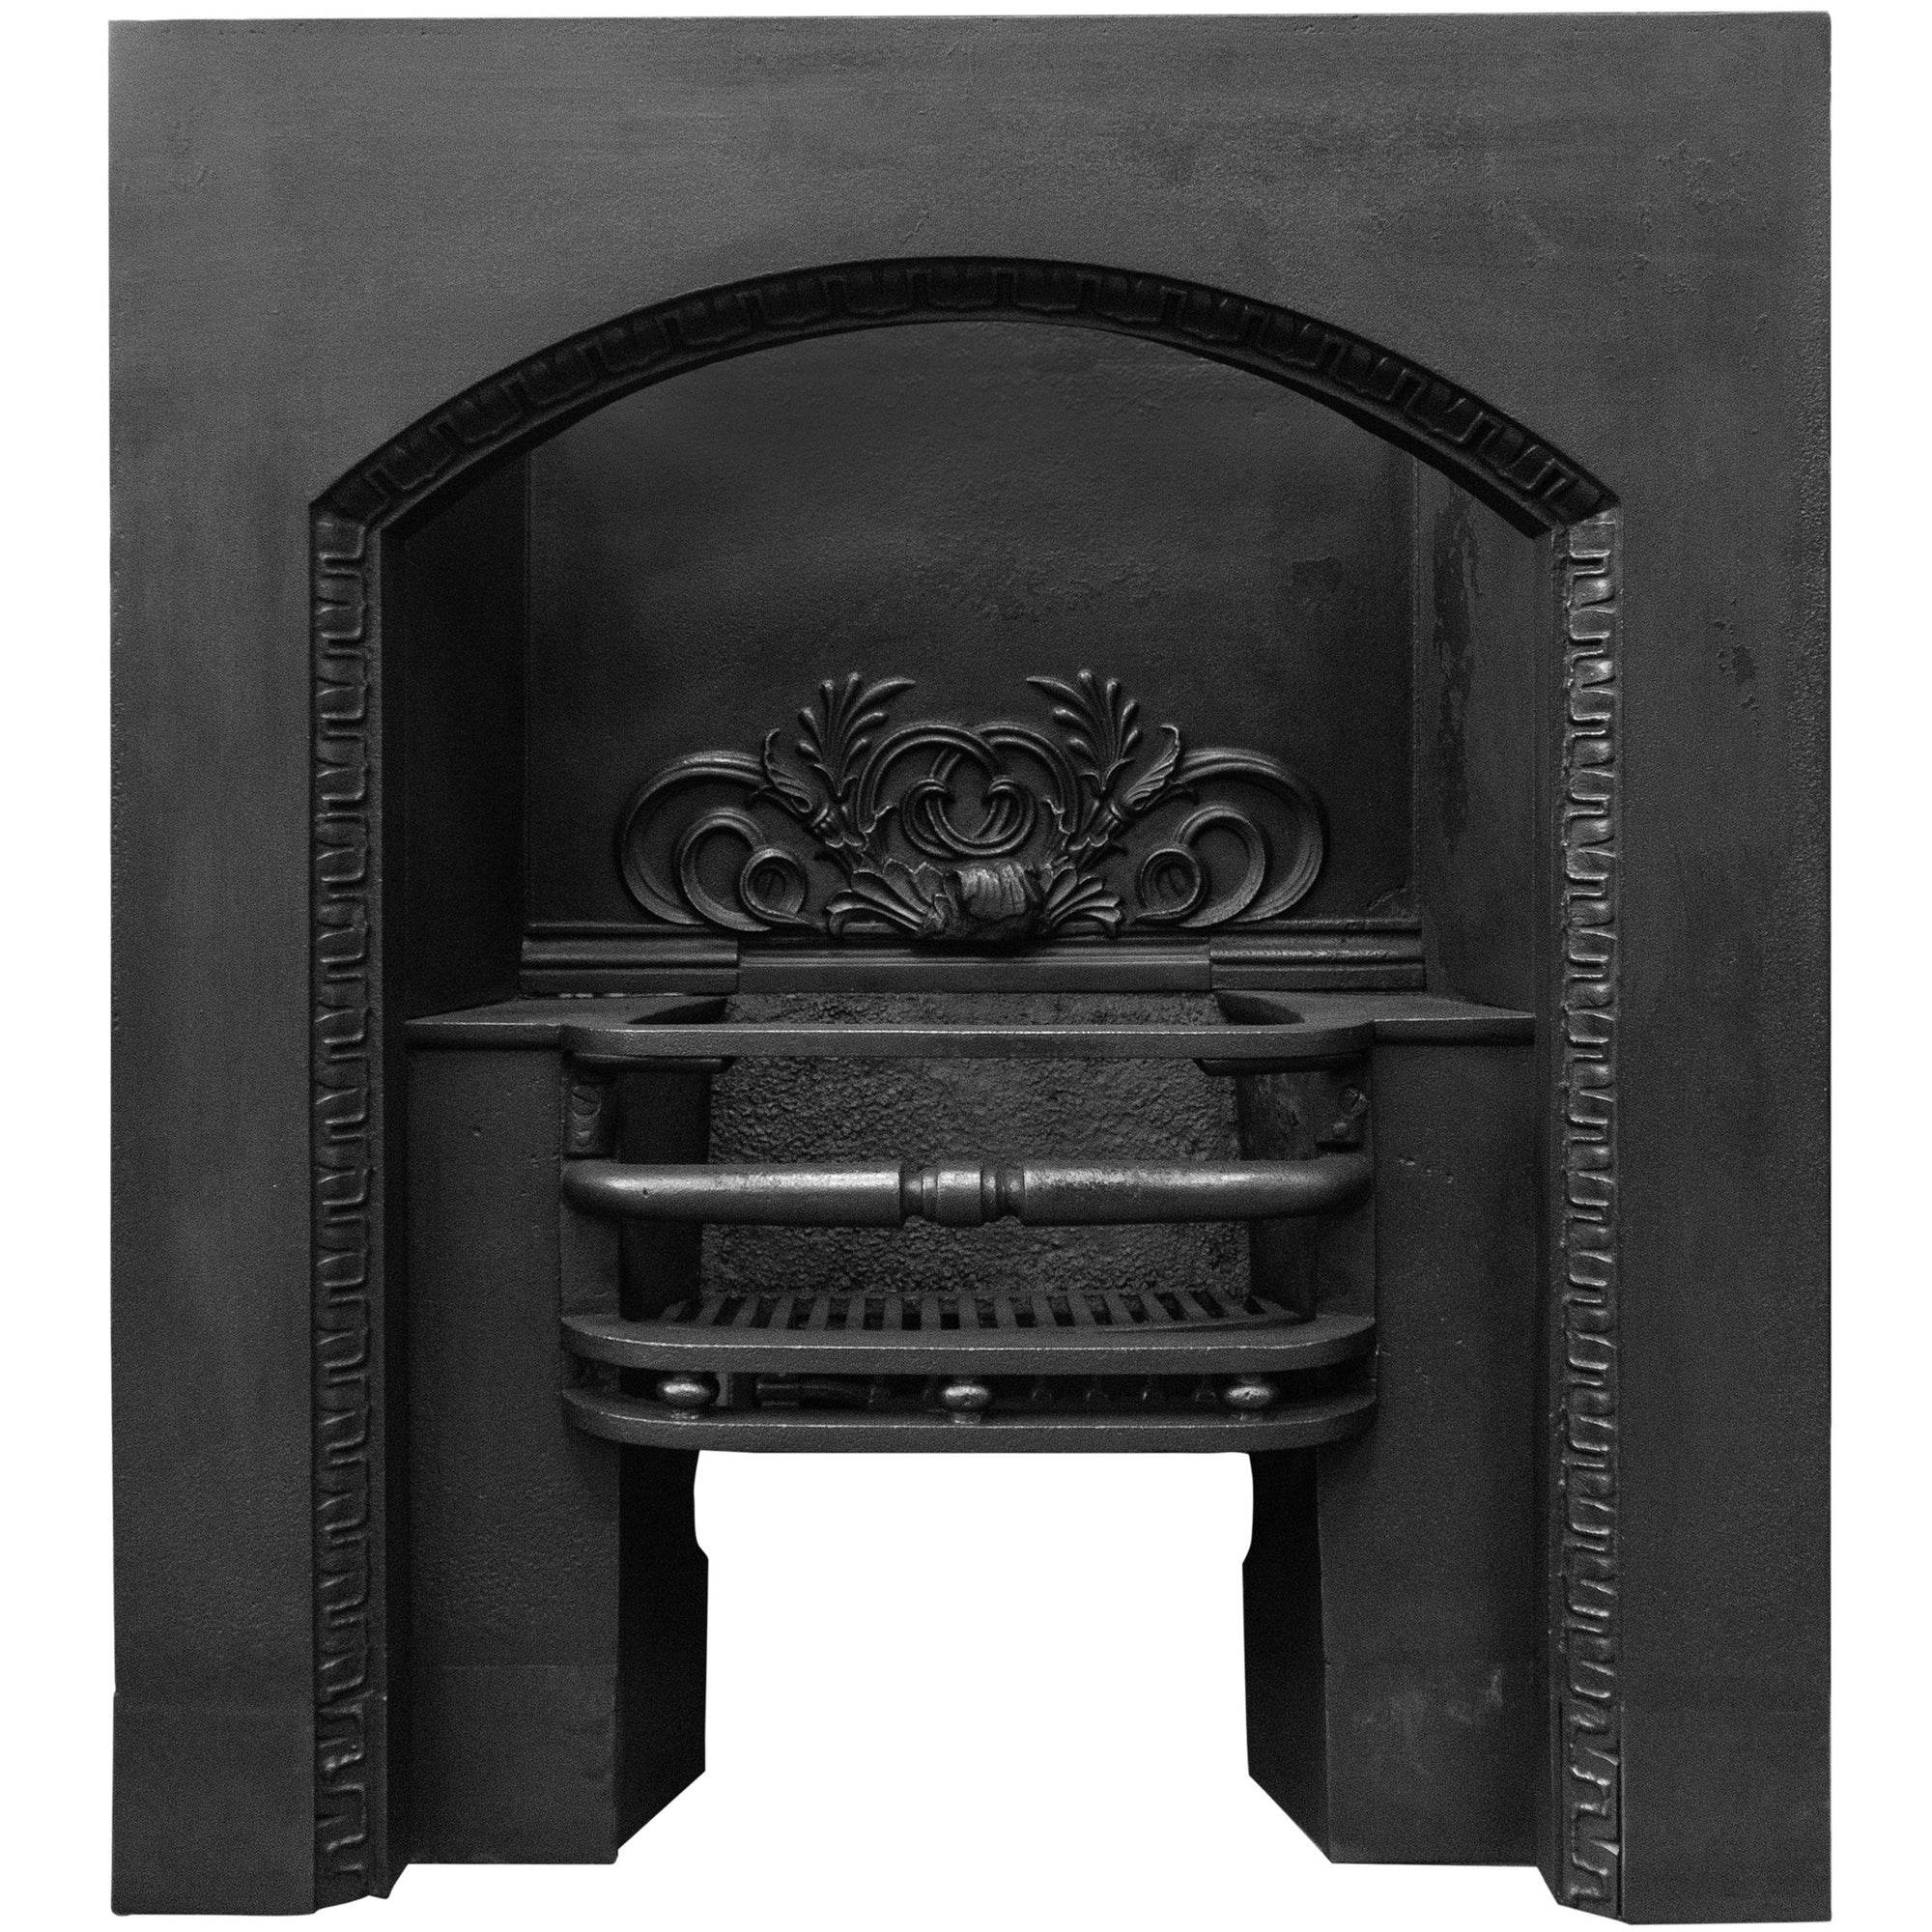 Antique Victorian Cast Iron Fireplace Insert (pair available)